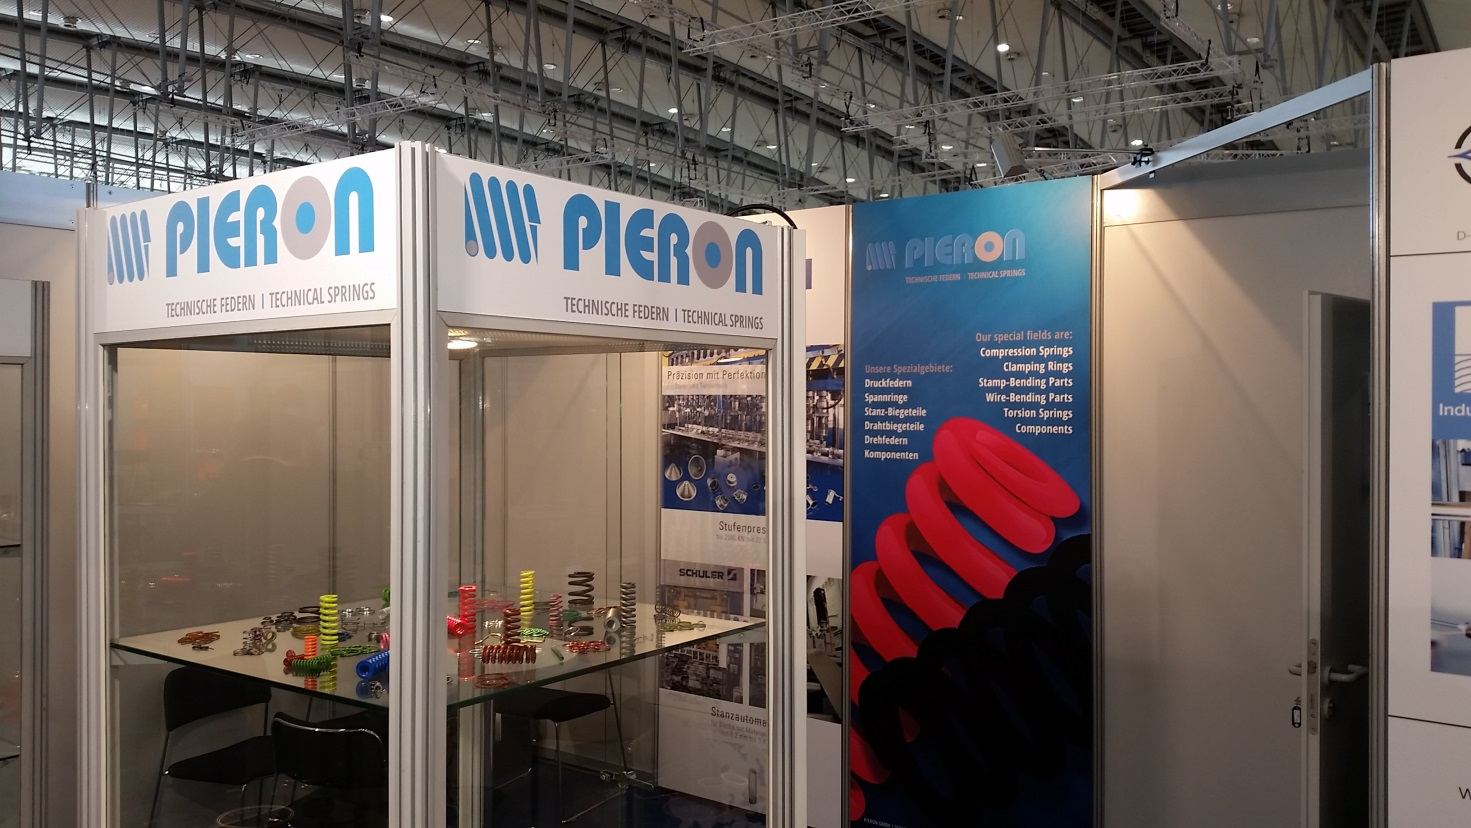 die pieron gmbh auf der hannover messe 2016 pieron gmbh. Black Bedroom Furniture Sets. Home Design Ideas